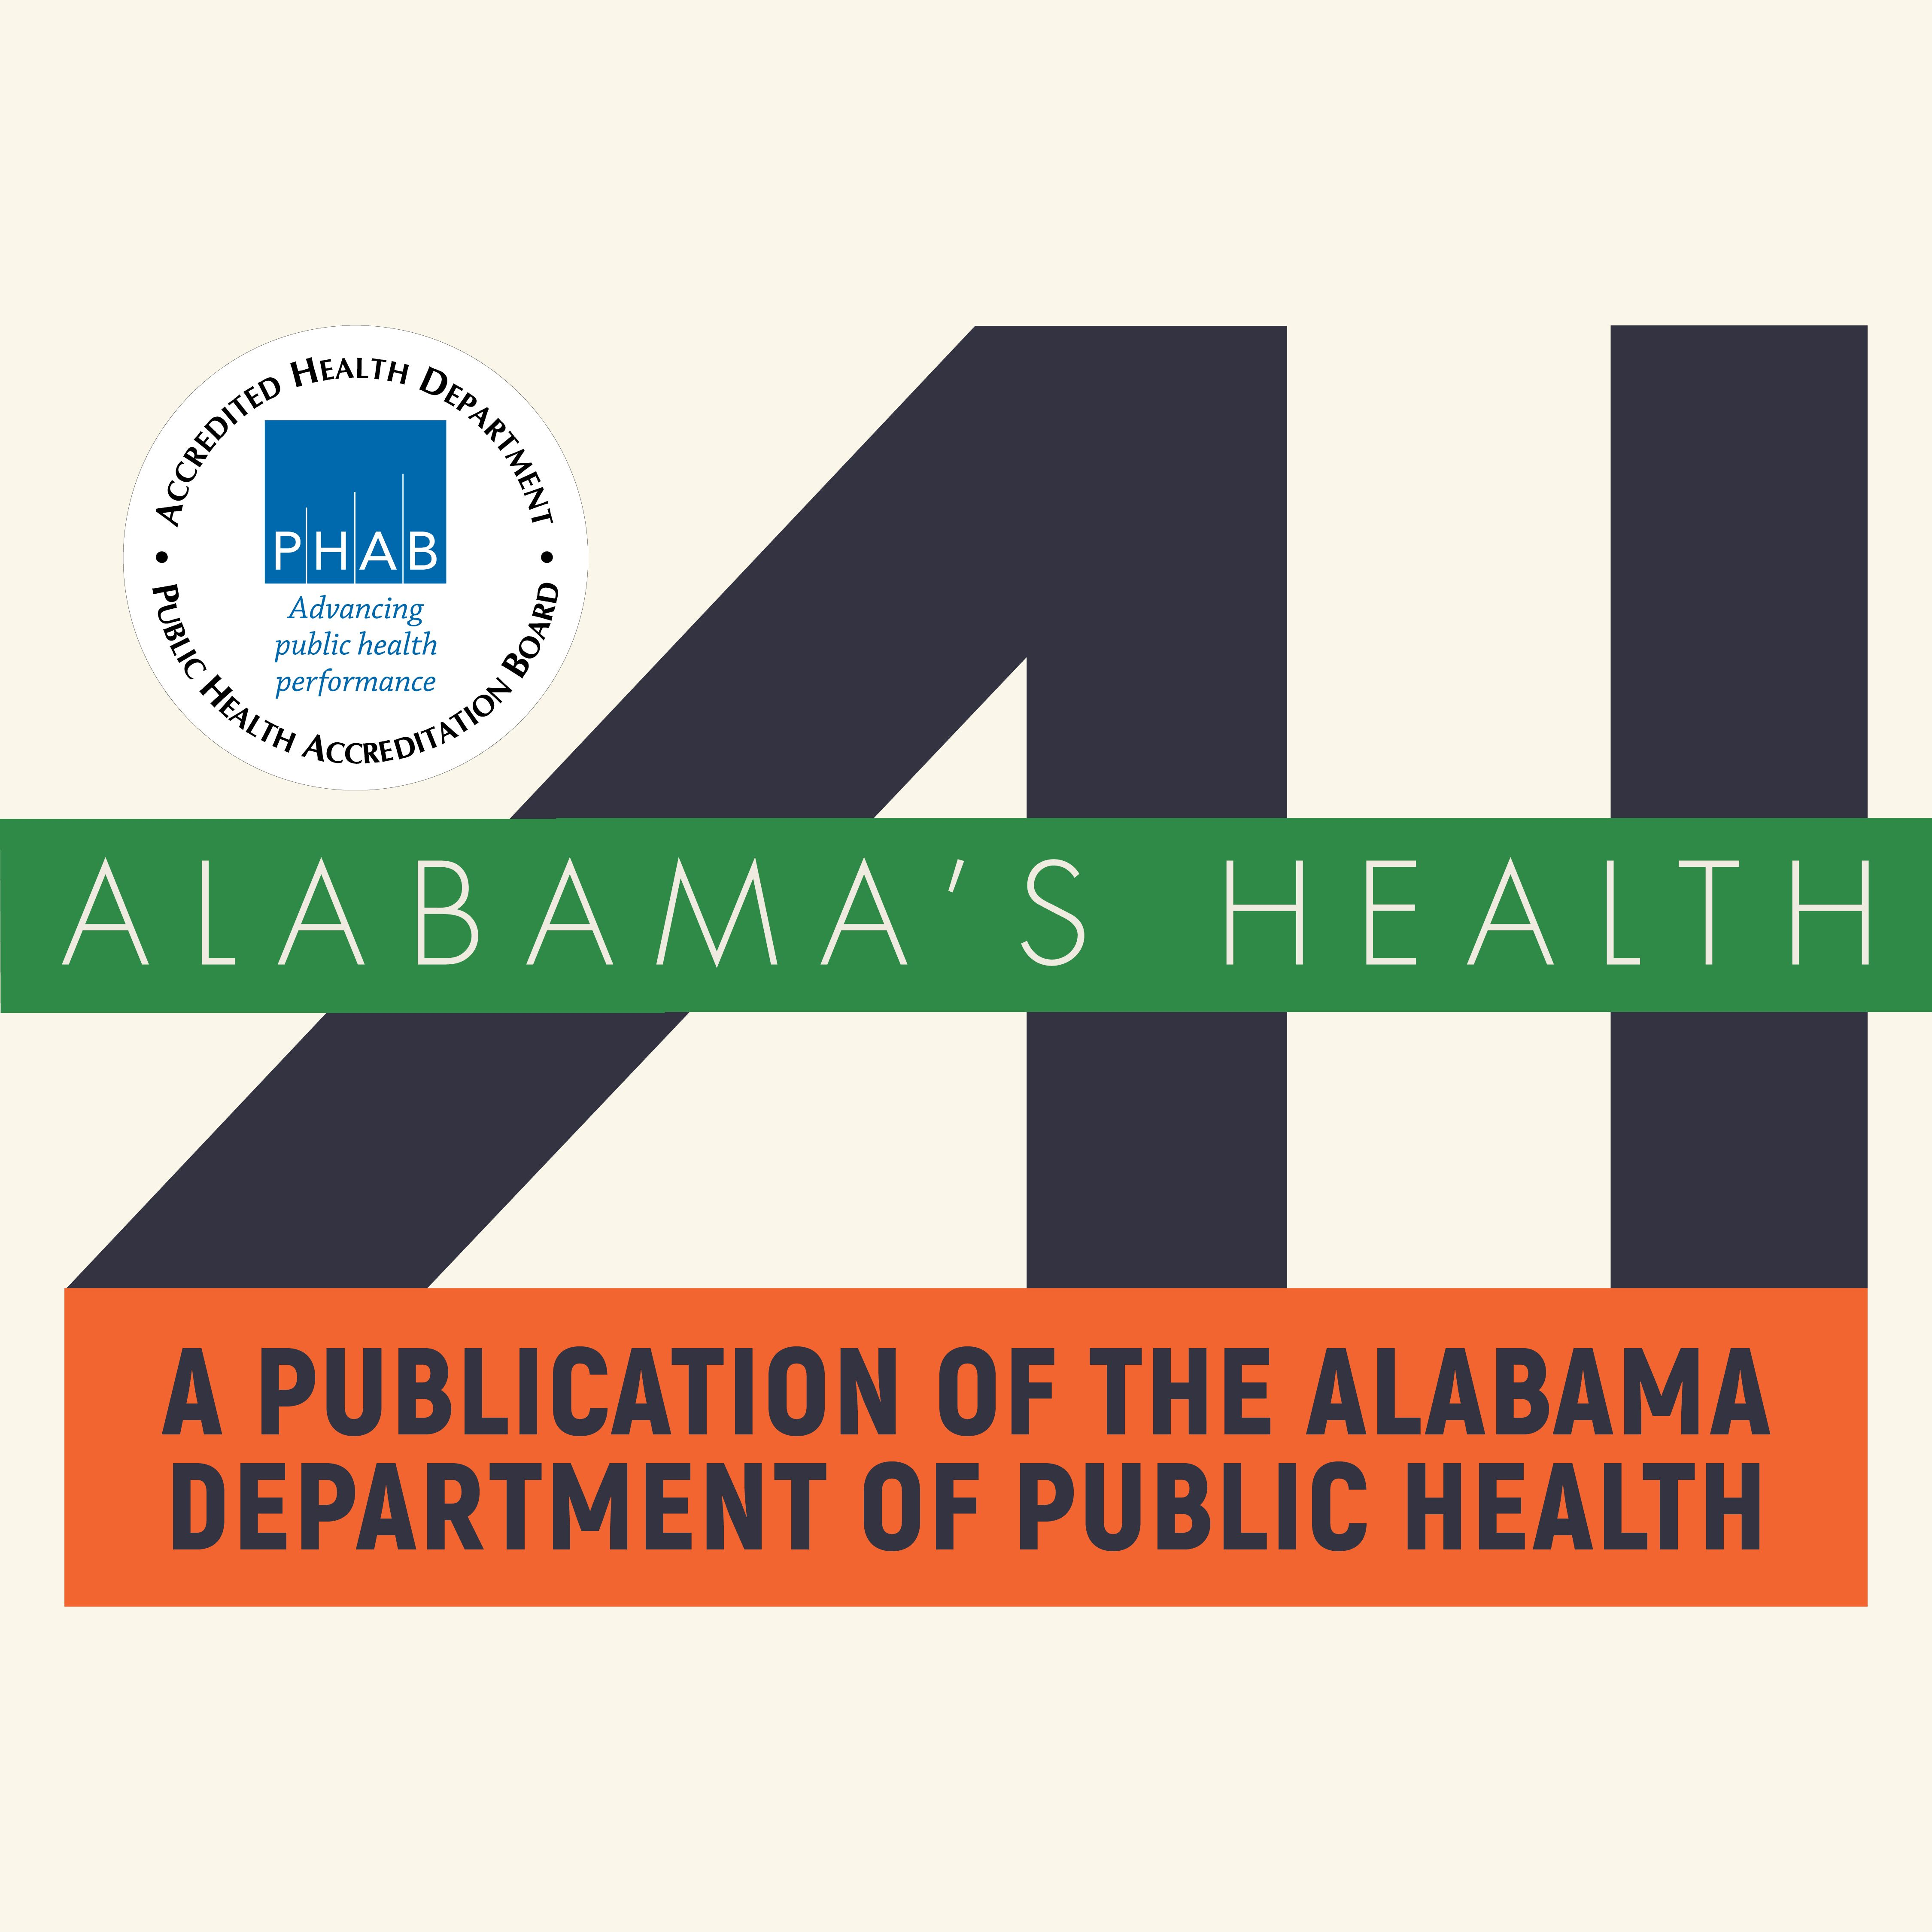 The January 2020 Issue Of Alabama S Health Featuring Stories On